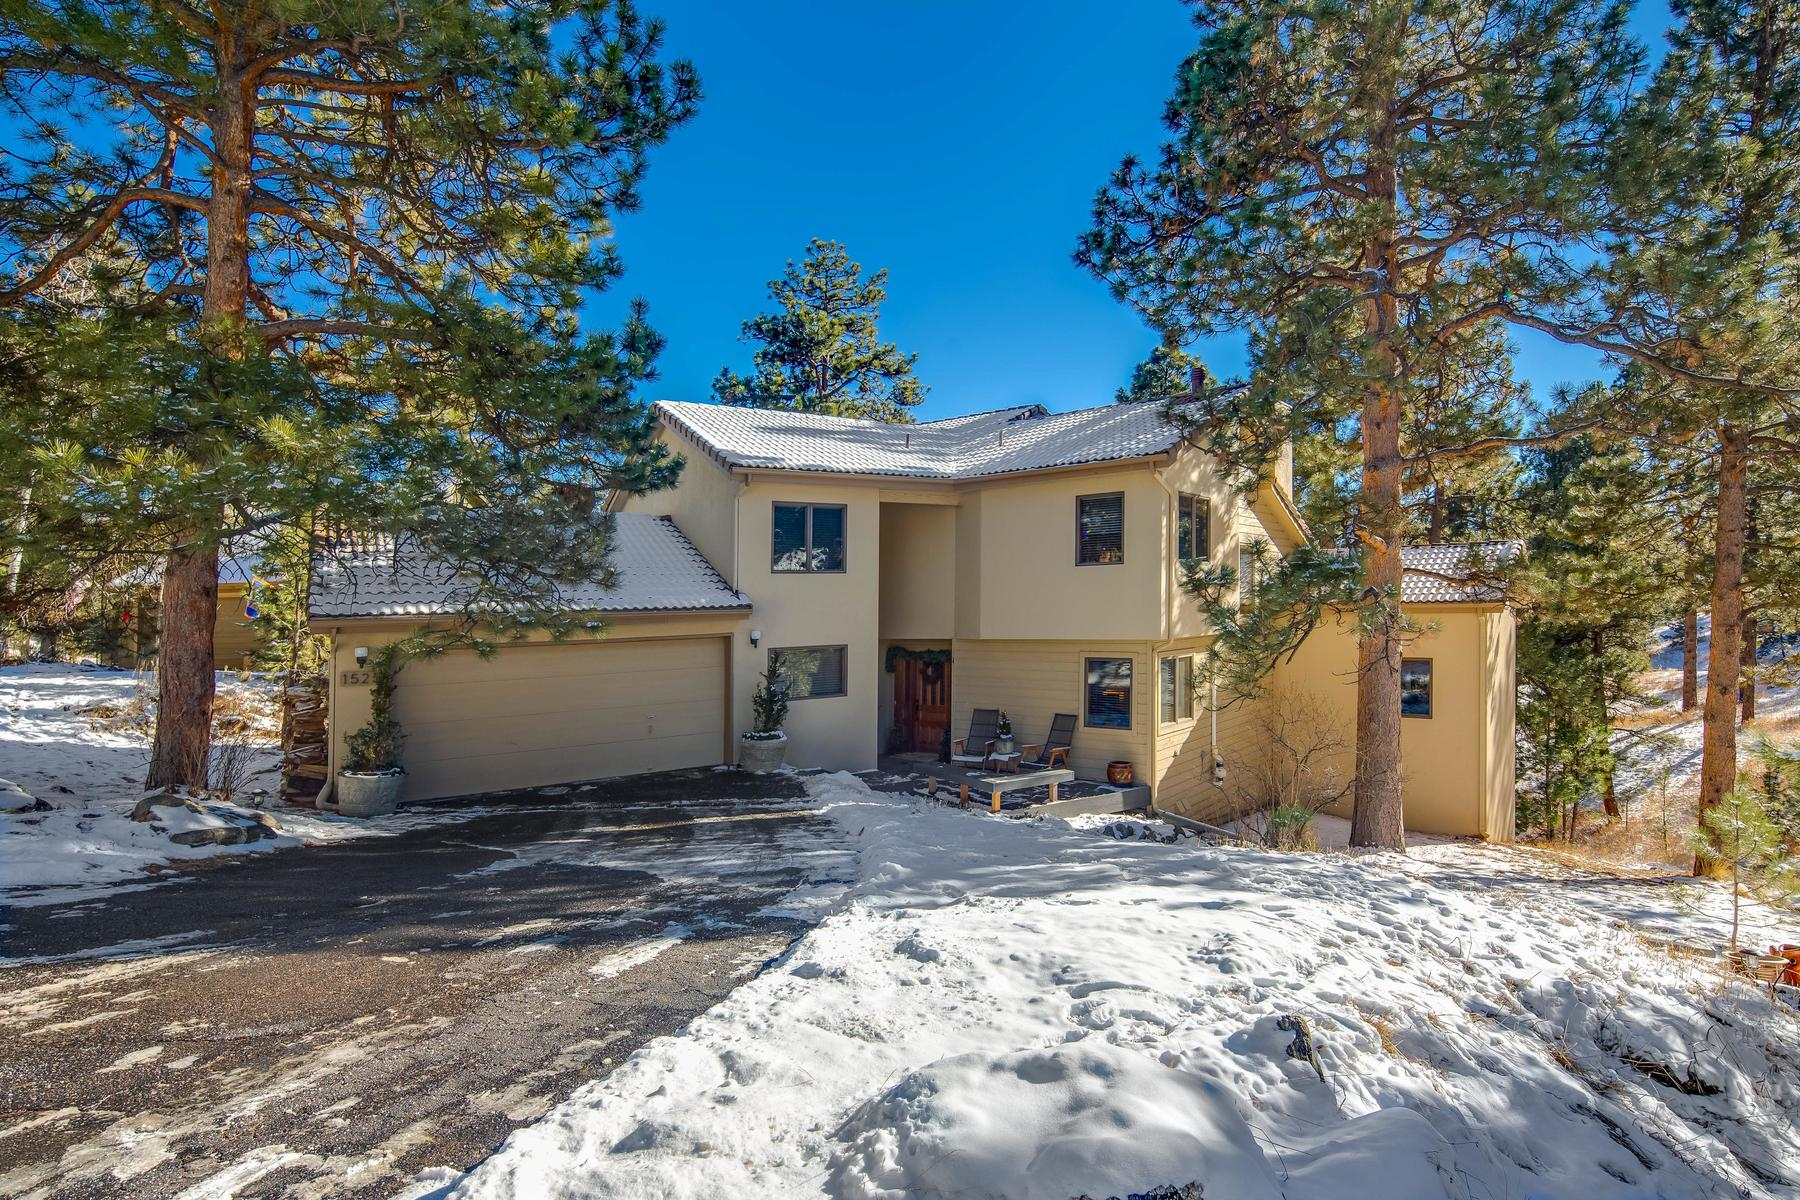 Single Family Home for Active at 1525 Tamarac Drive 1525 Tamarac Drive Golden, Colorado 80401 United States